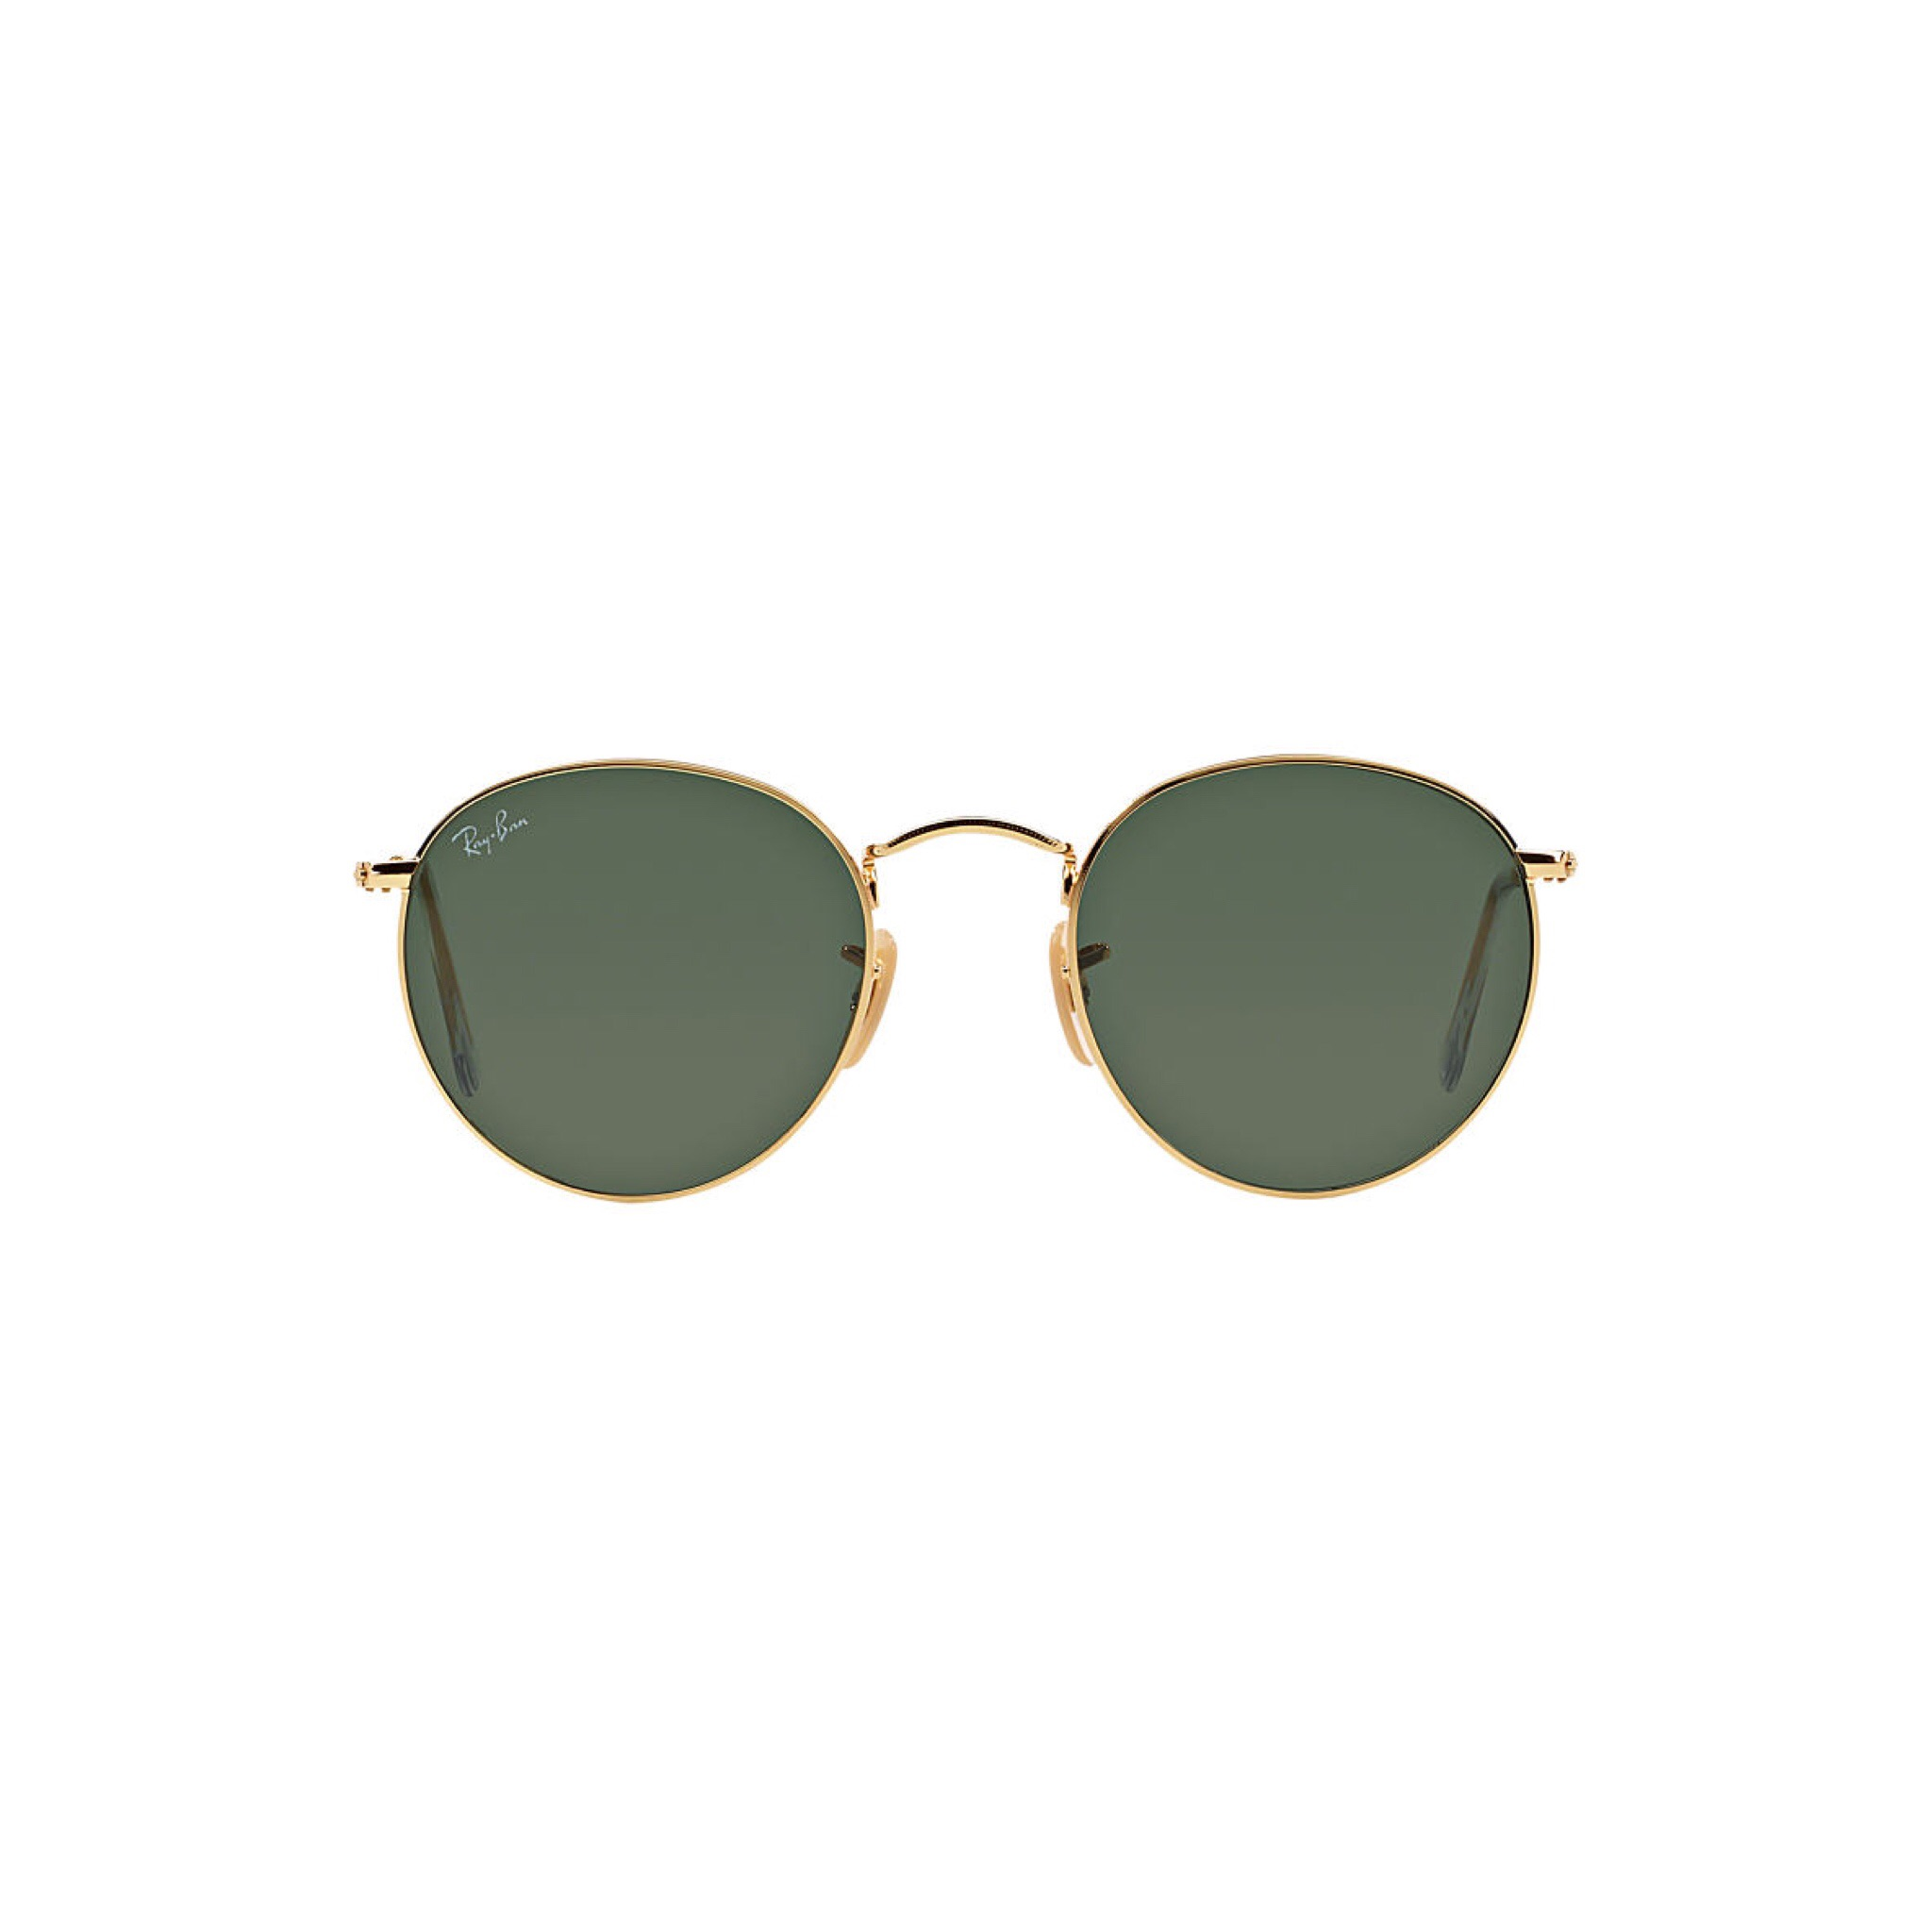 Raybans ... I tend to treat myself to a new pair of Raybans each summer. Currently loving these round gold specs.